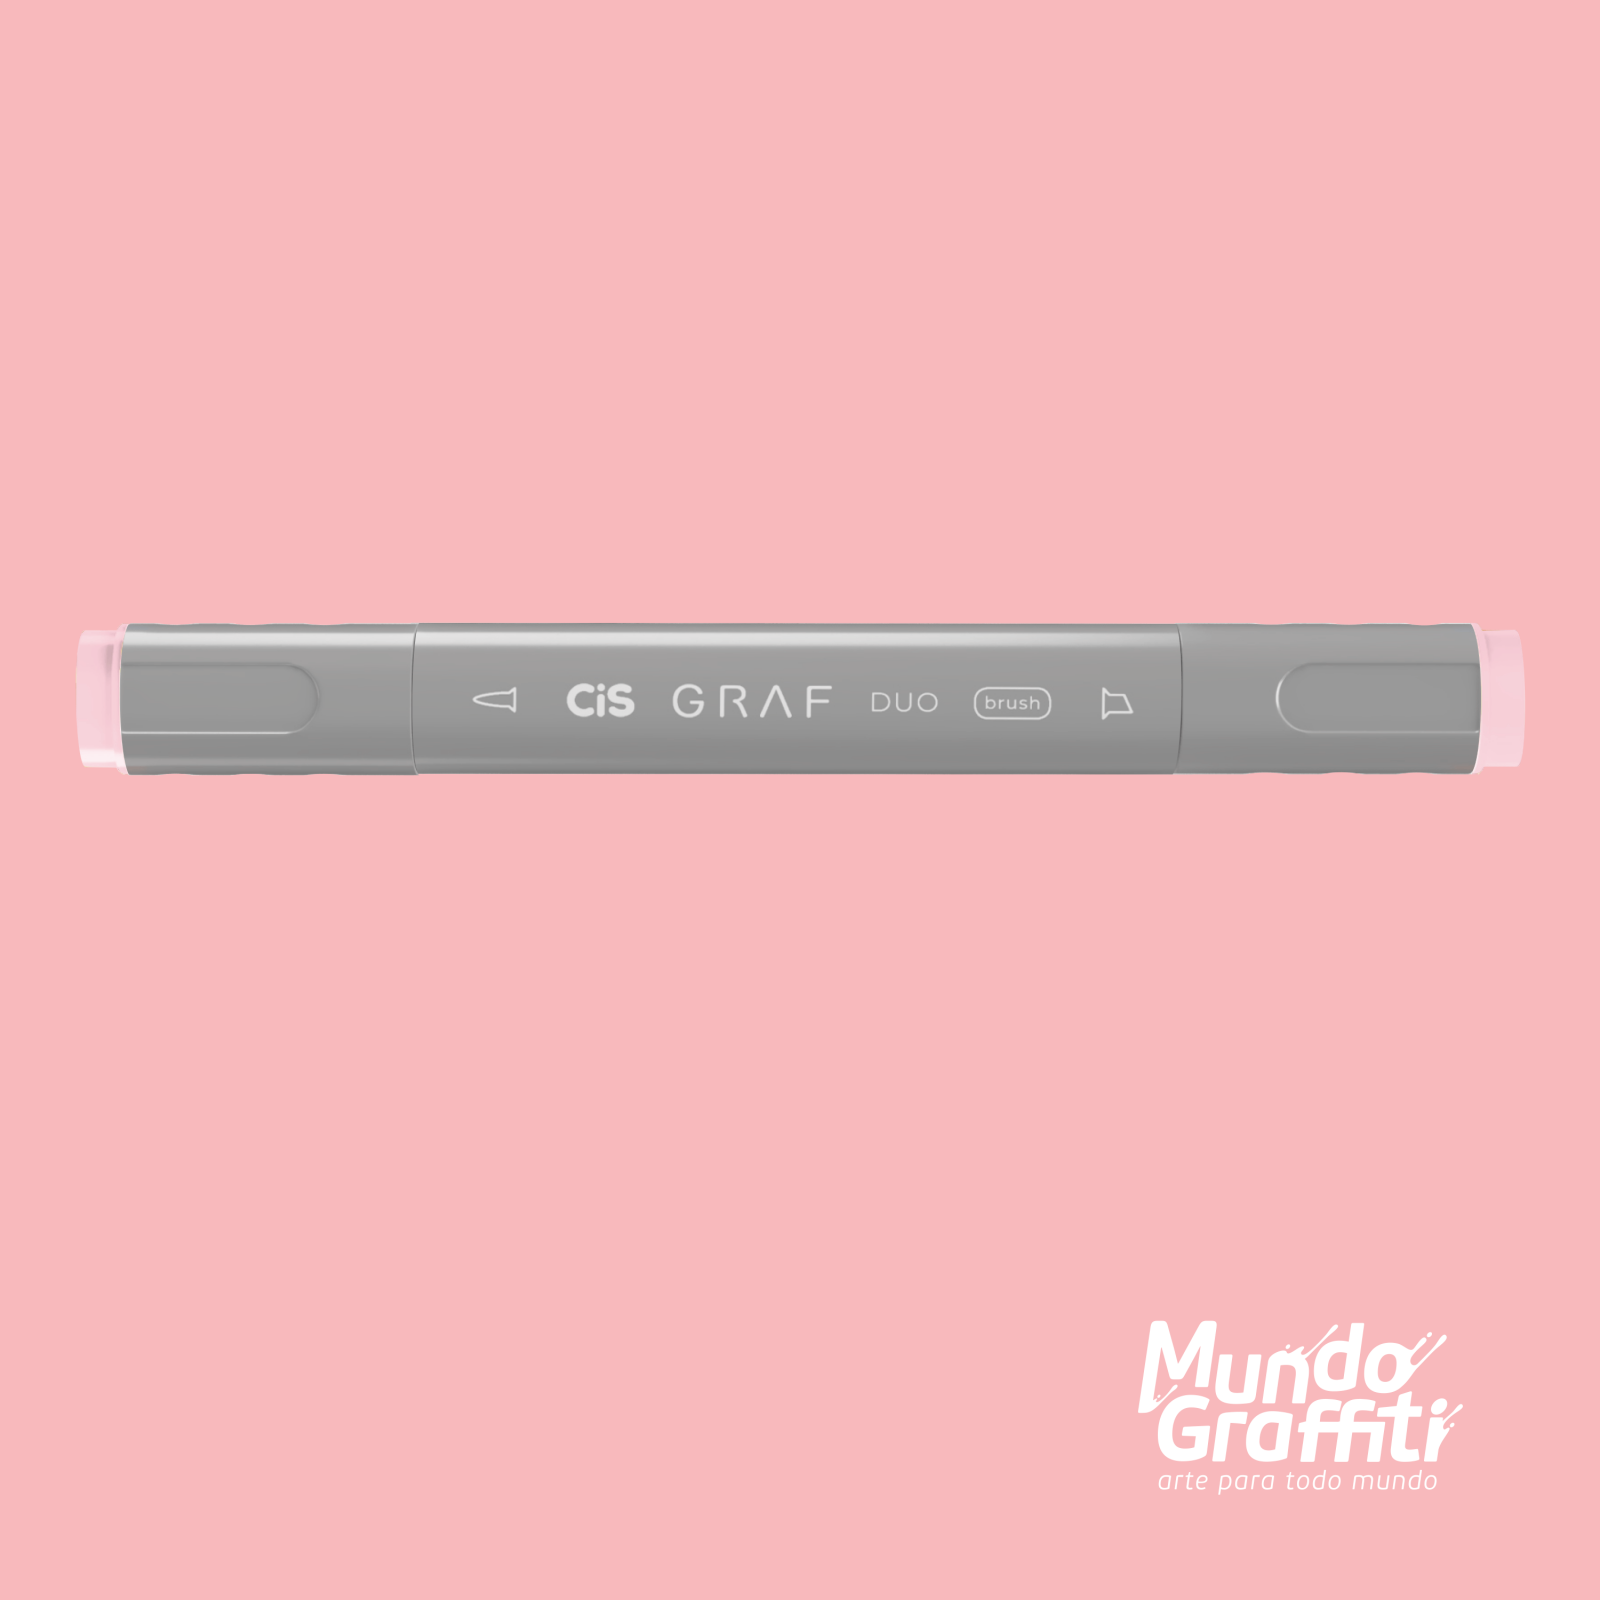 Marcador Cis Graf Duo Brush Pale Pink 9 - Mundo Graffiti